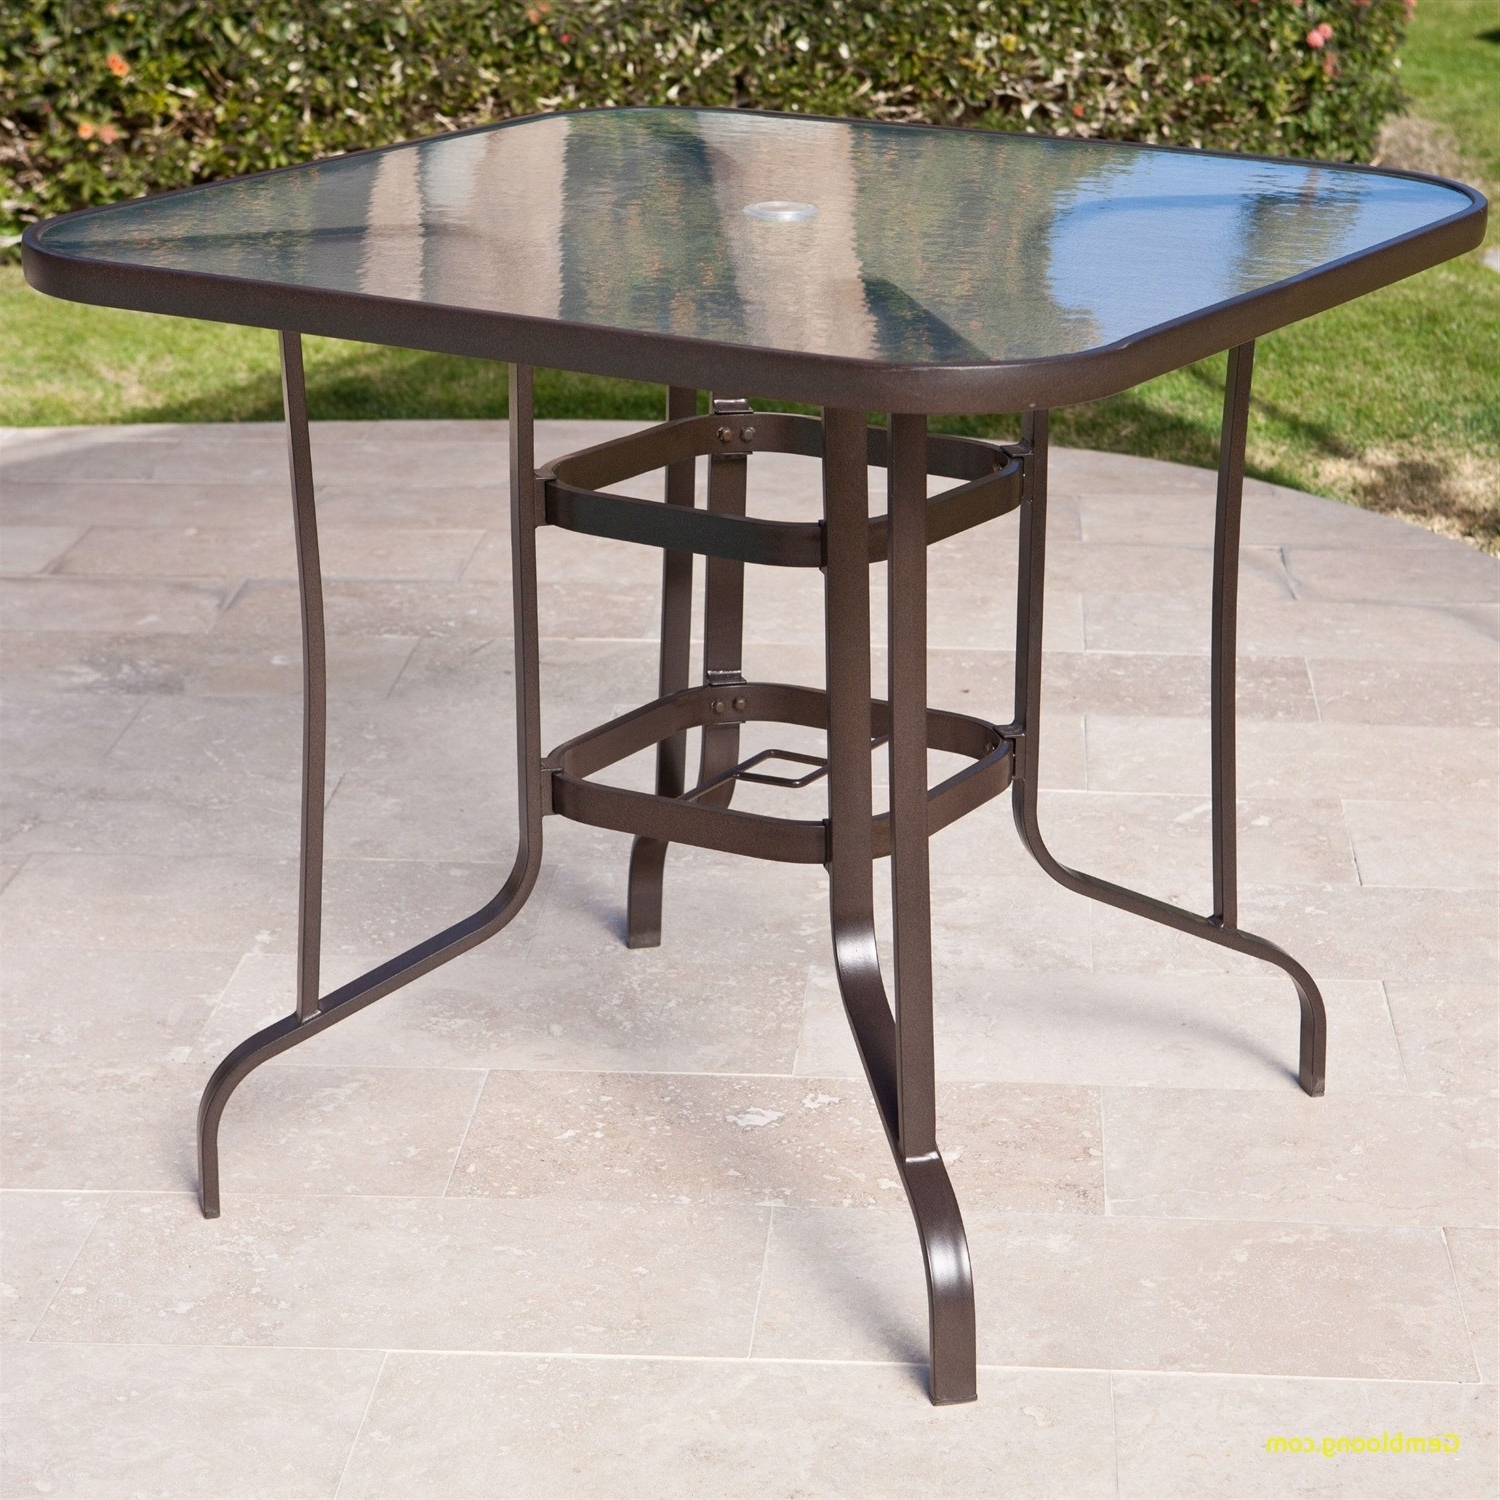 Patio Tables With Umbrella Hole Pertaining To Famous Patio Table With Umbrella Hole – Pelikansurf (View 4 of 20)